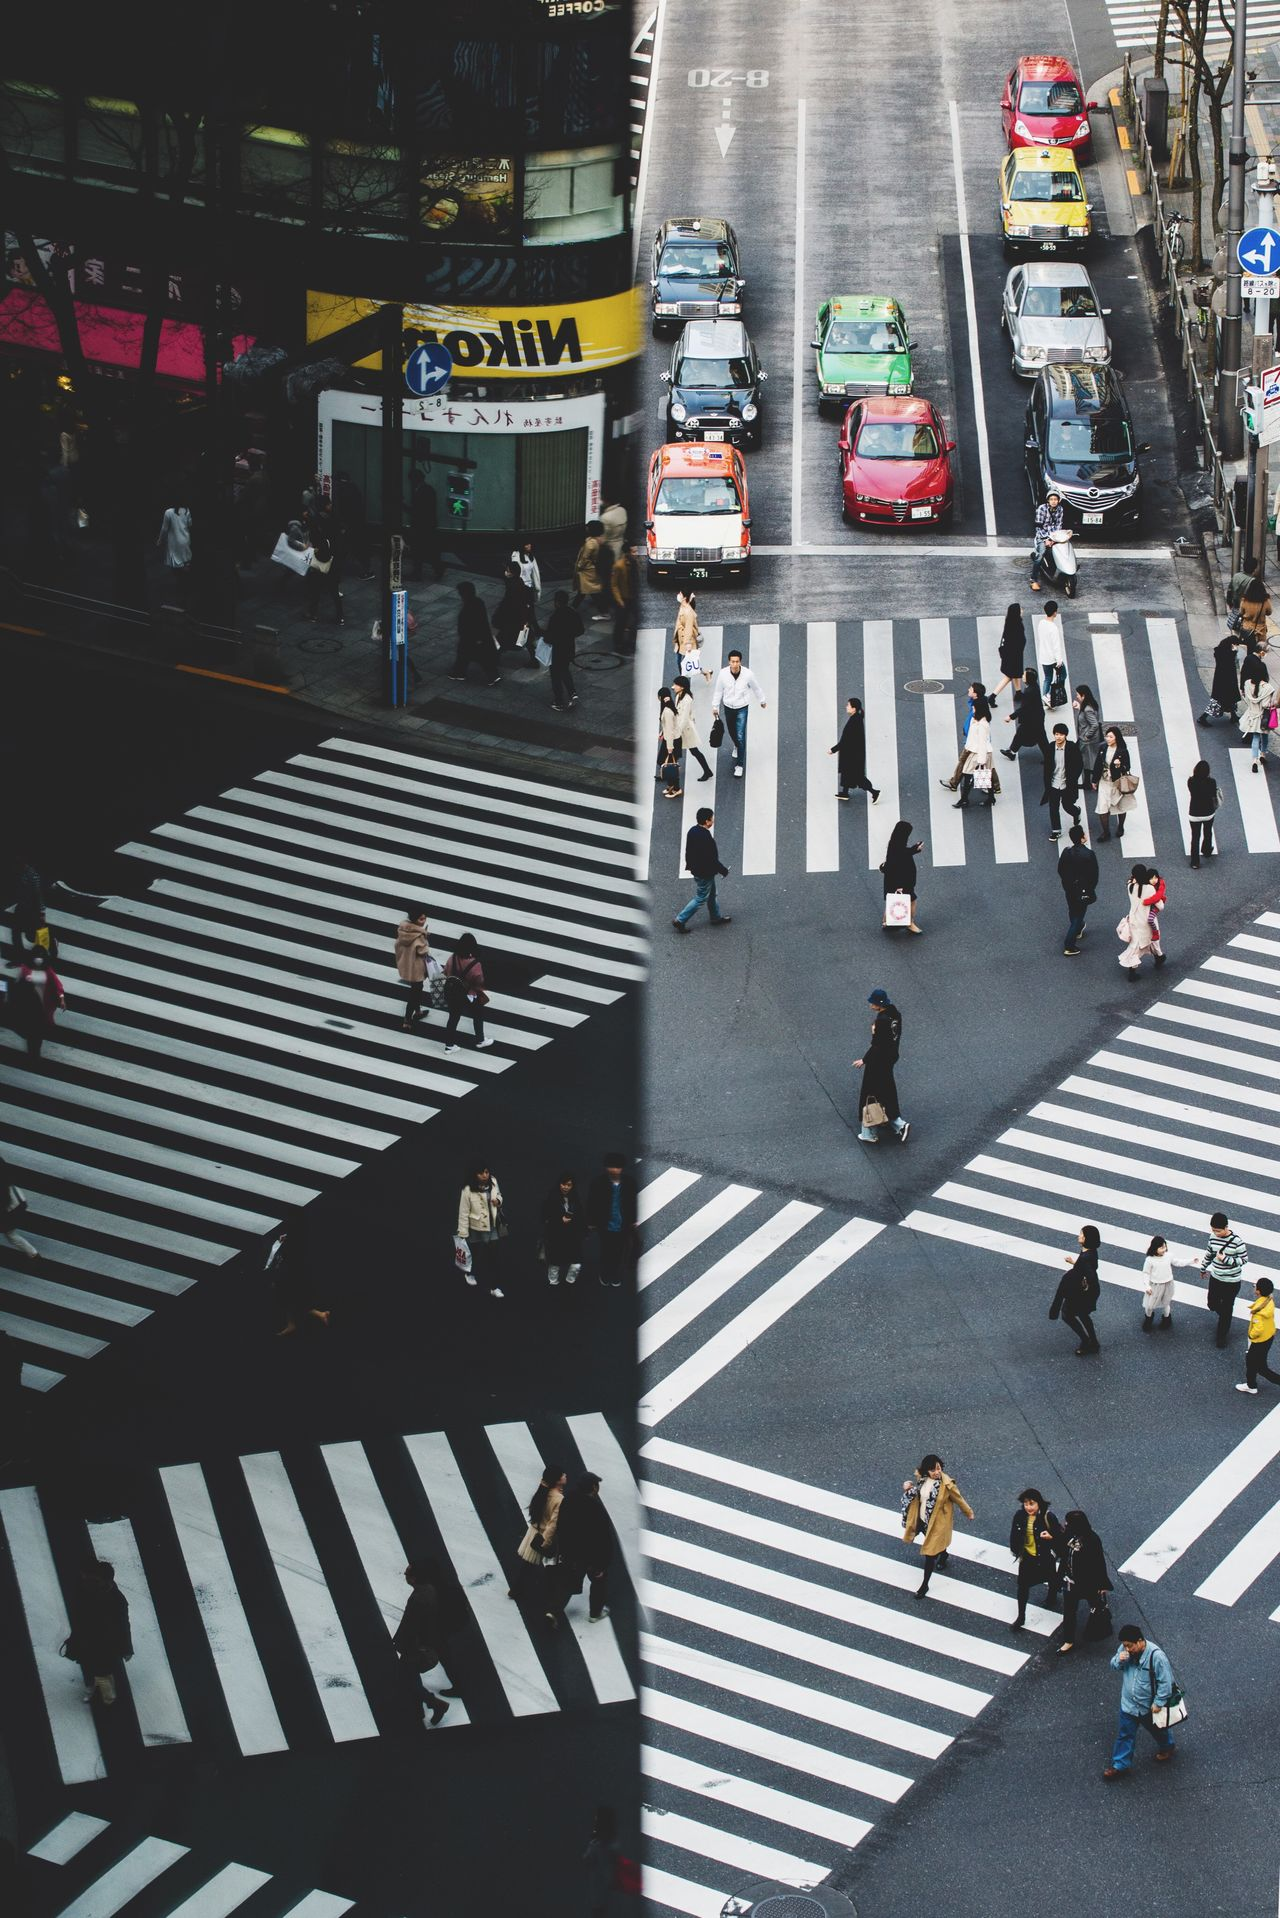 Street Minimalobsession Zebra Crossing High Angle View Large Group Of People Real People City Life Transportation Crossing City Street Minimalism Tokyo Japan Minimal Minimalist Streetphotography City Street The City Light